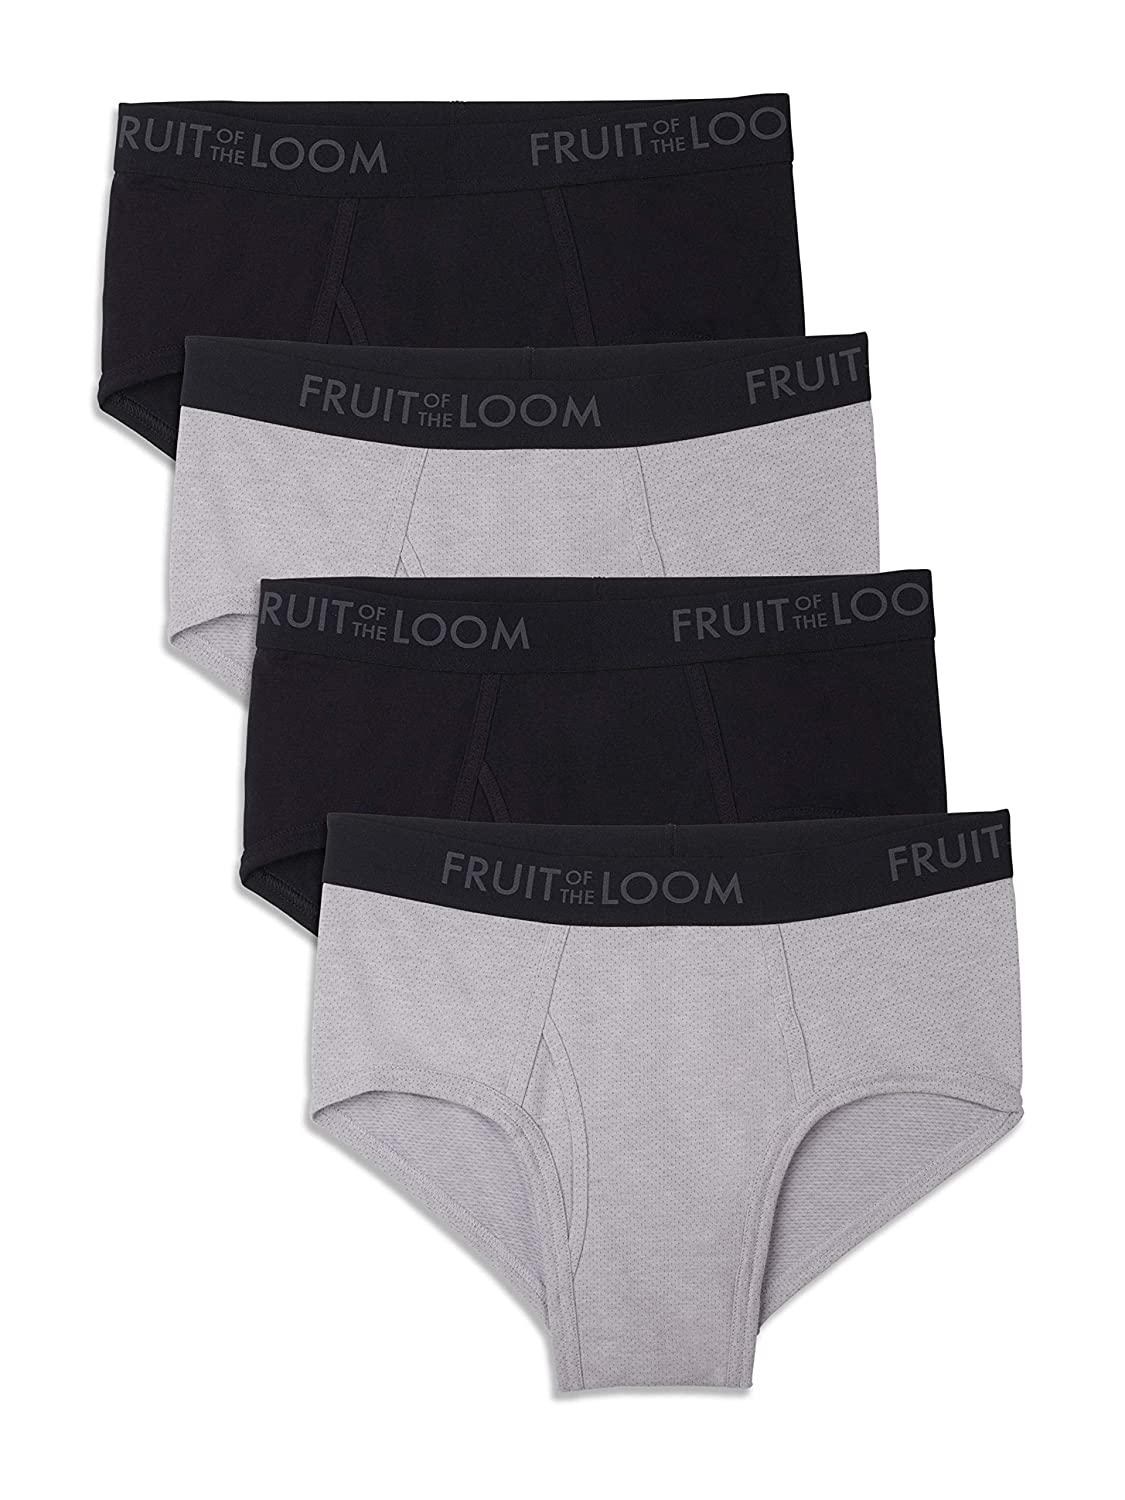 Fruit of the Loom Mens Breathable Underwear